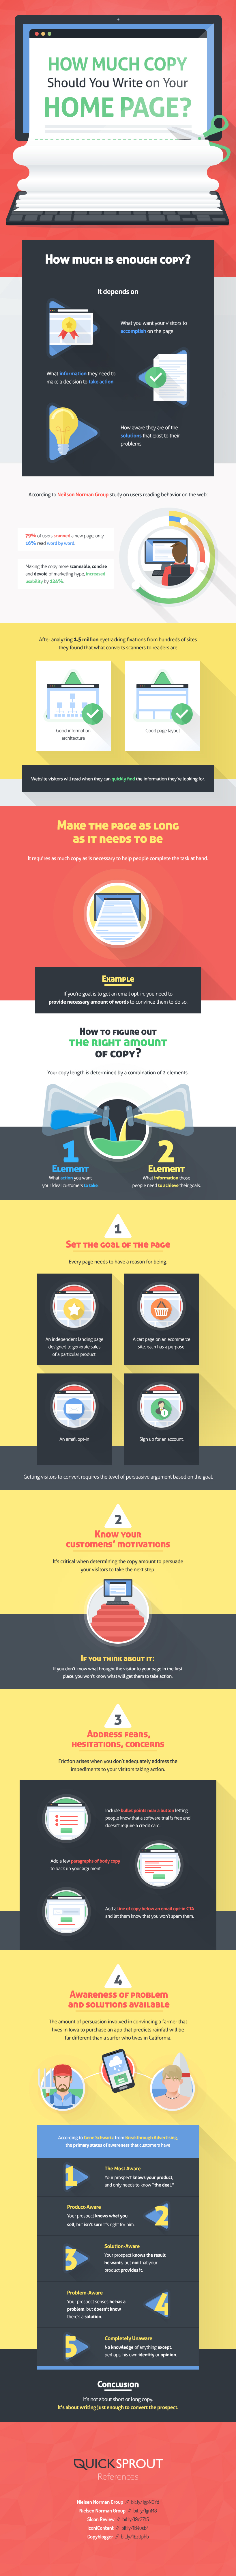 how much copy should you write on your home page